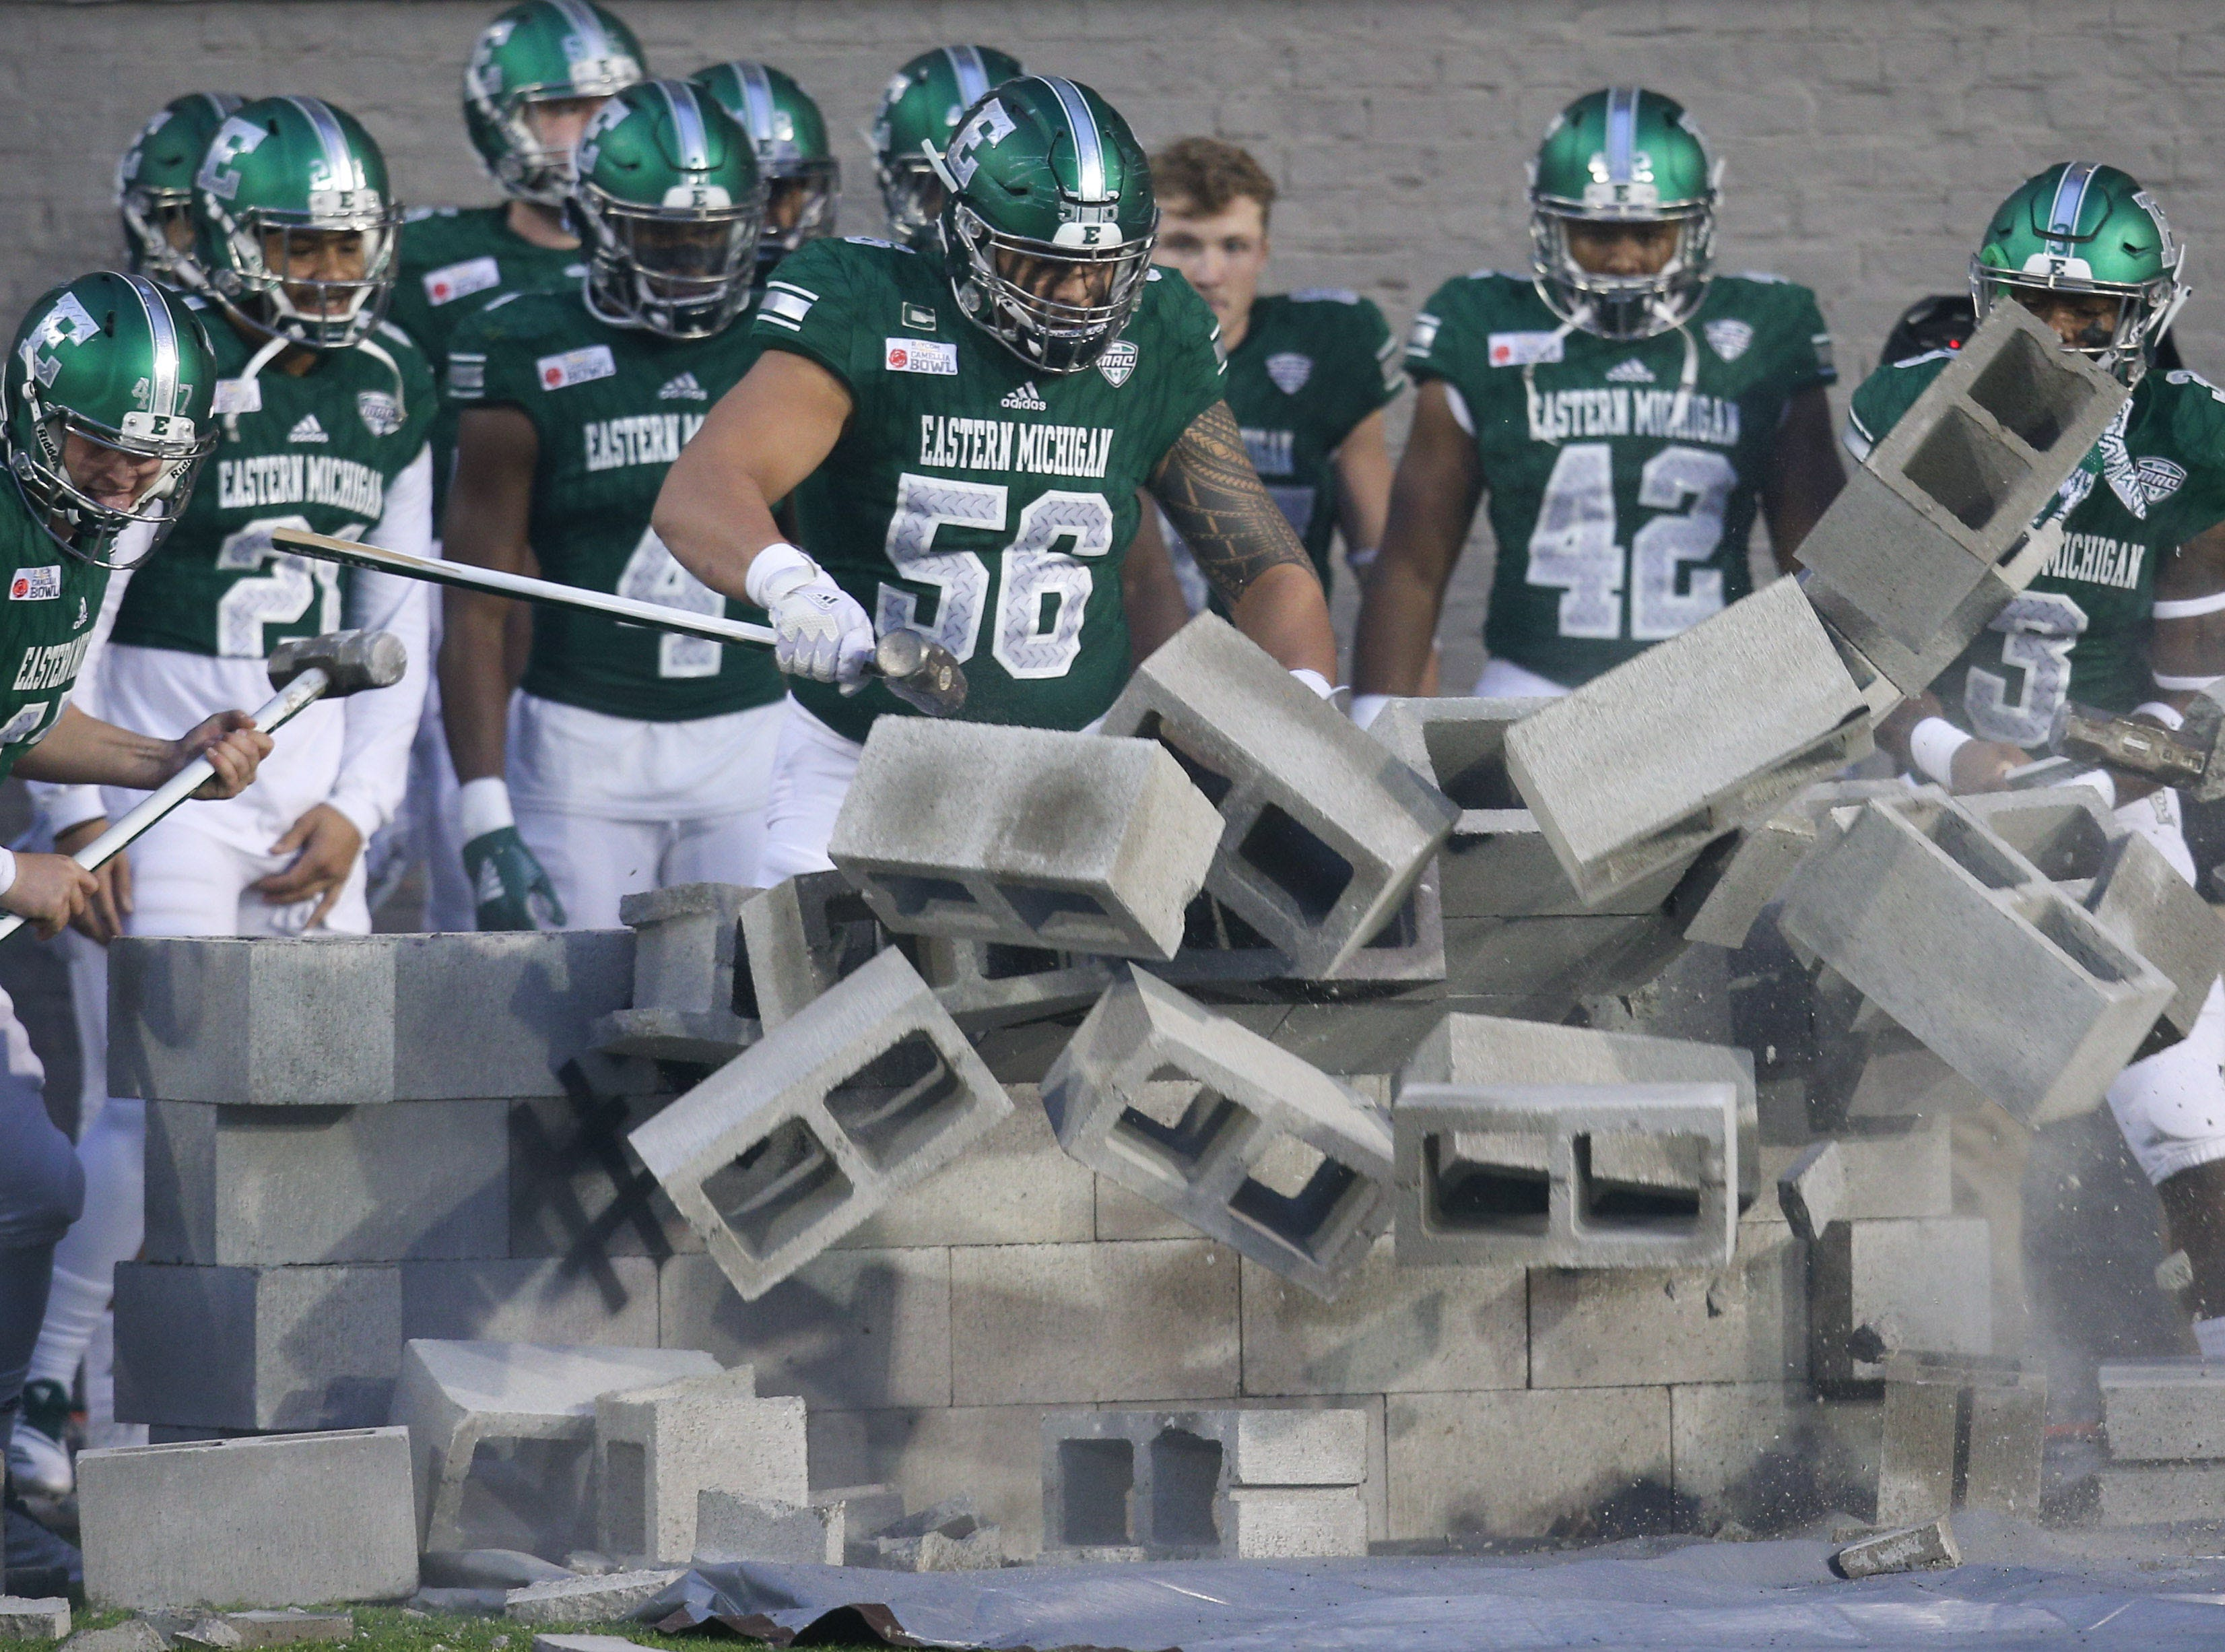 The Eastern Michigan Eagles bring down a wall before entering the field to play the Georgia Southern Eagles in the Camellia Bowl.